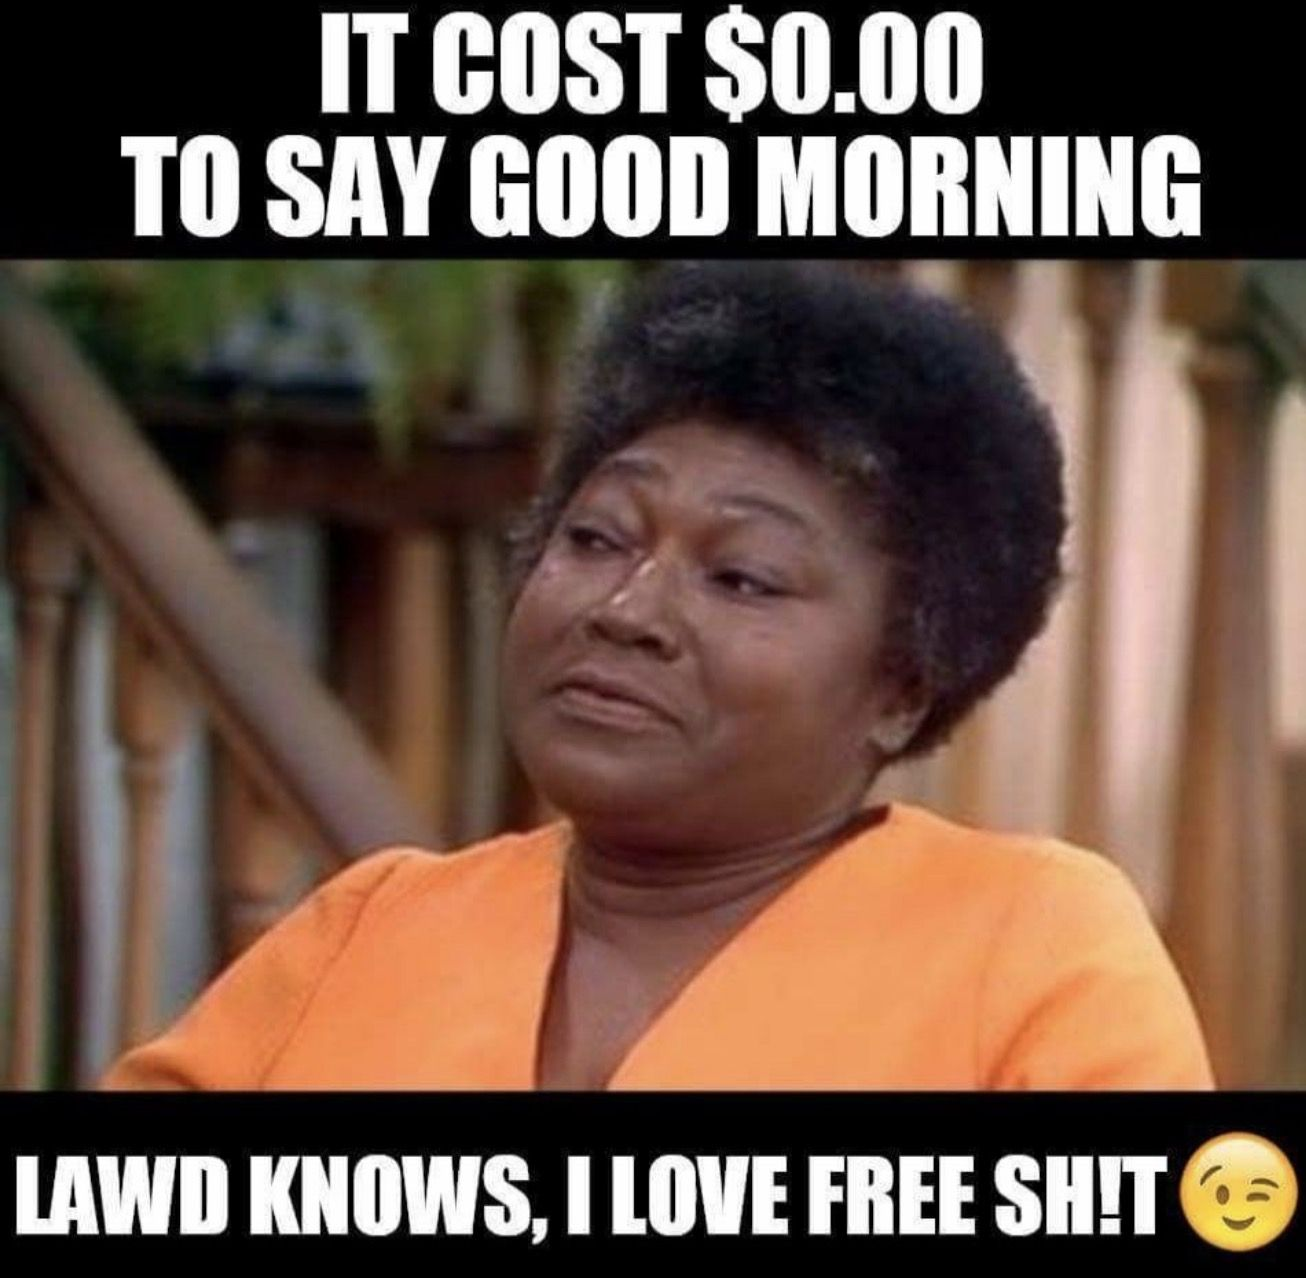 Funny Good Morning Memes Start Your Day With A Smile Morning Quotes Funny Good Morning Meme Funny Good Morning Memes